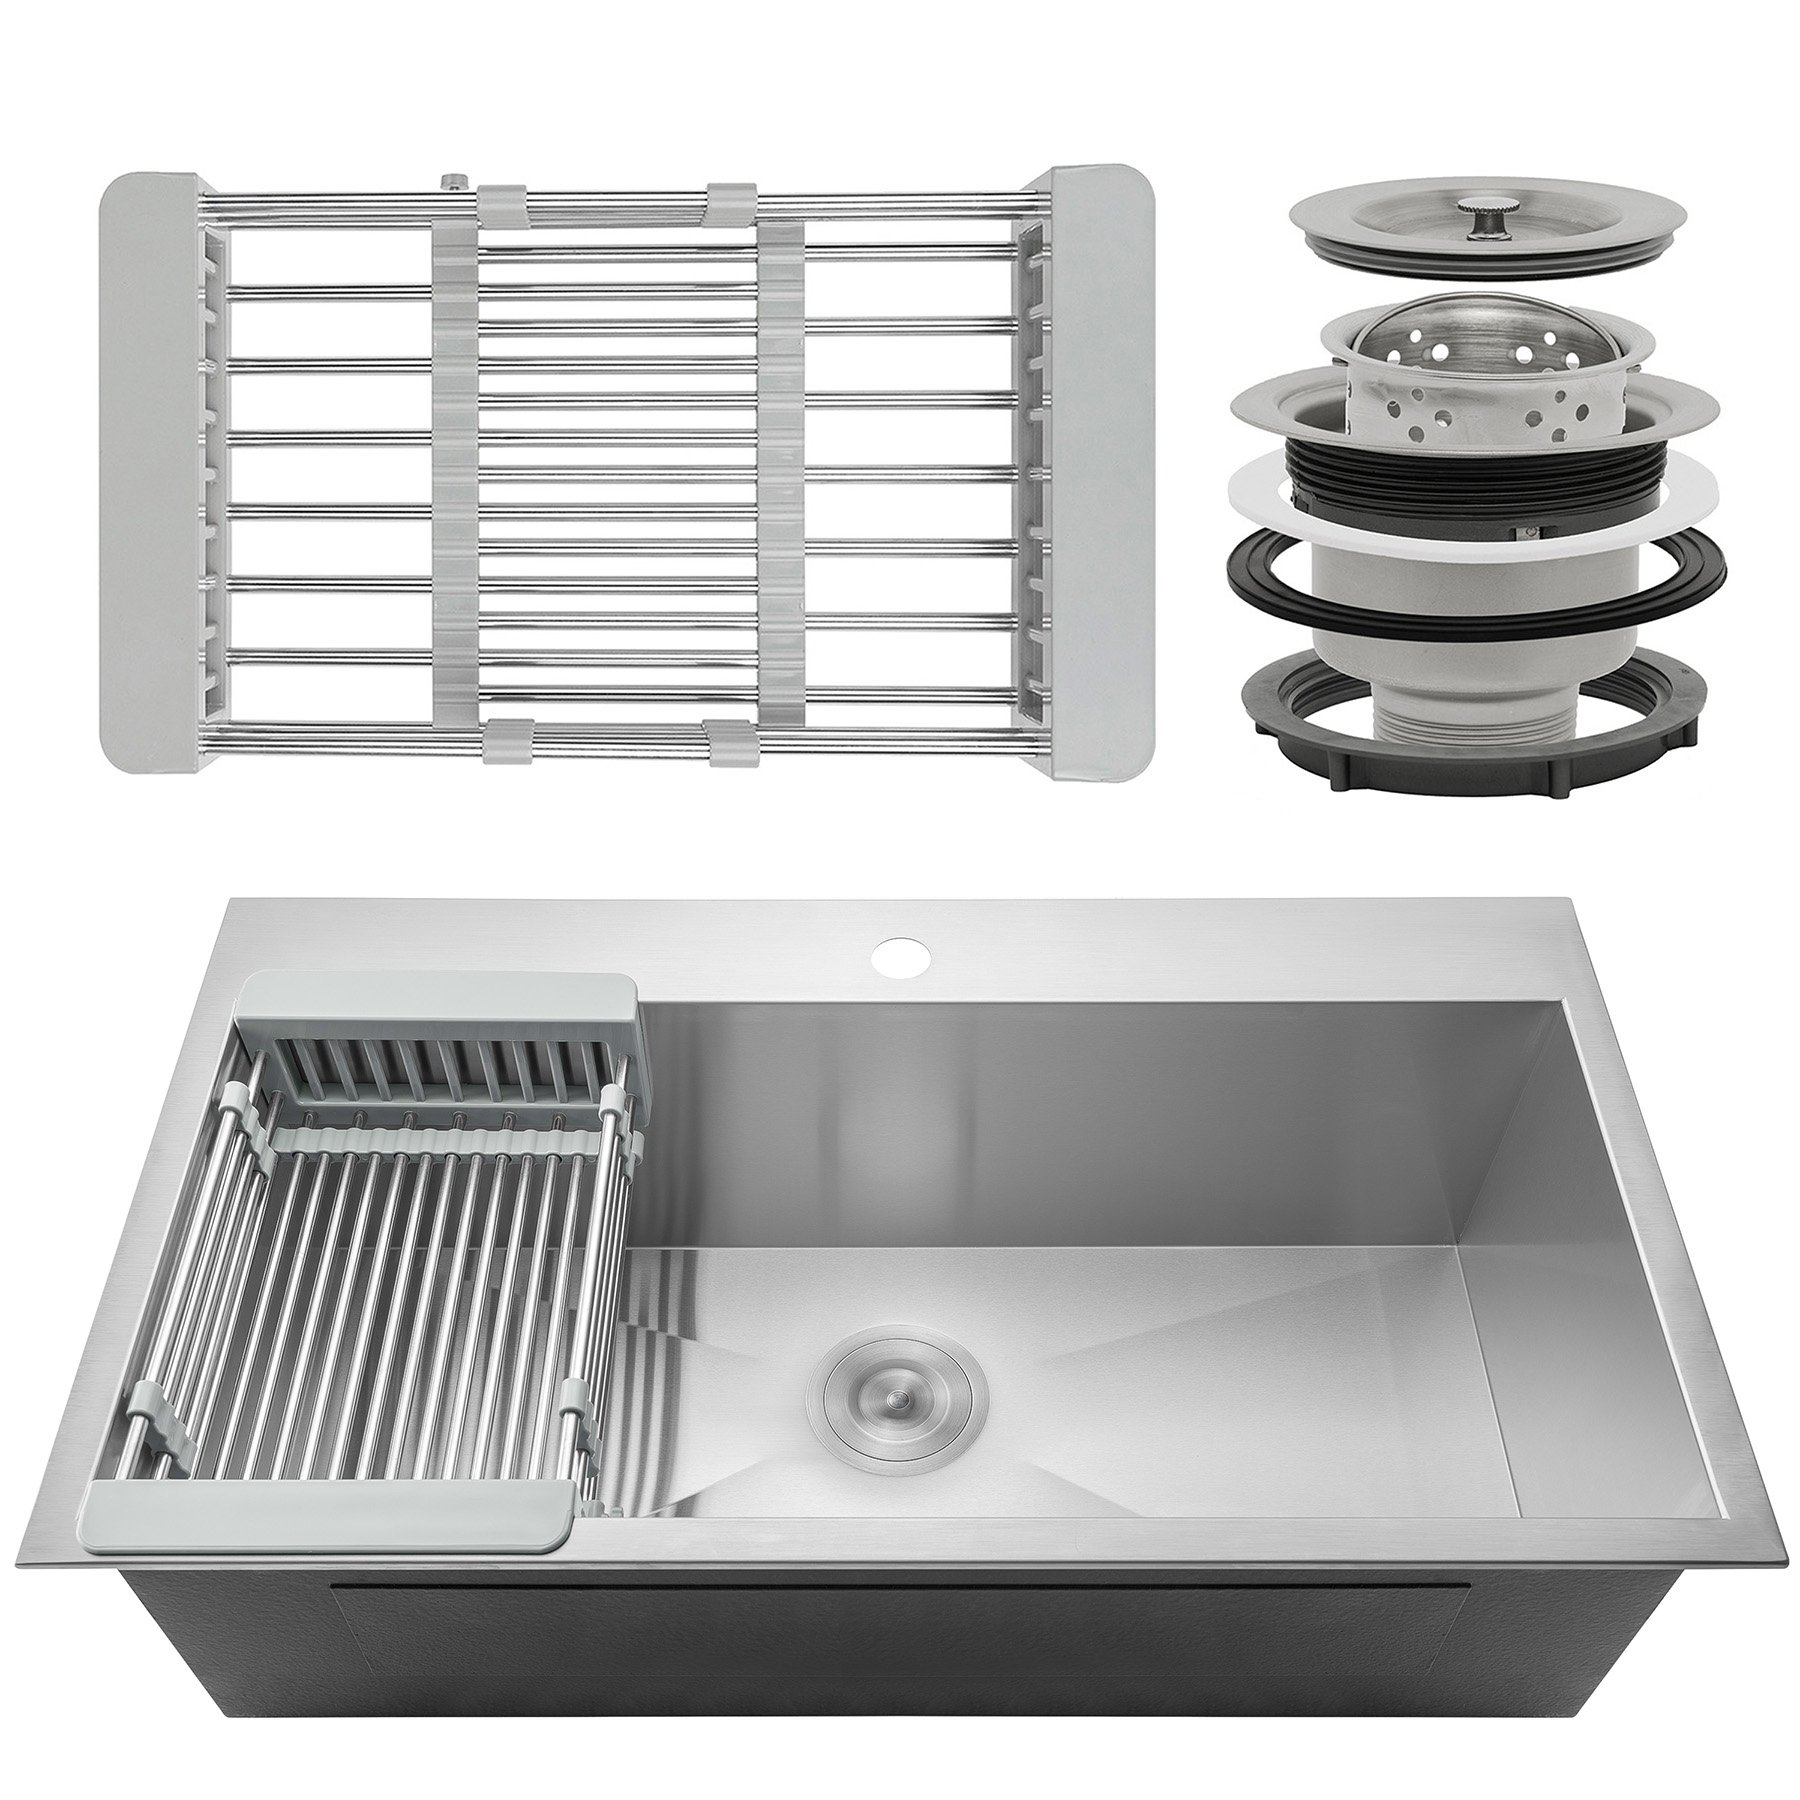 Firebird 30'' x 18'' x 9'' 18 Gauge Handmade Stainless Steel Topmount Kitchen Sink w/ Strainer & Adjustable Dish Tray by Firebird